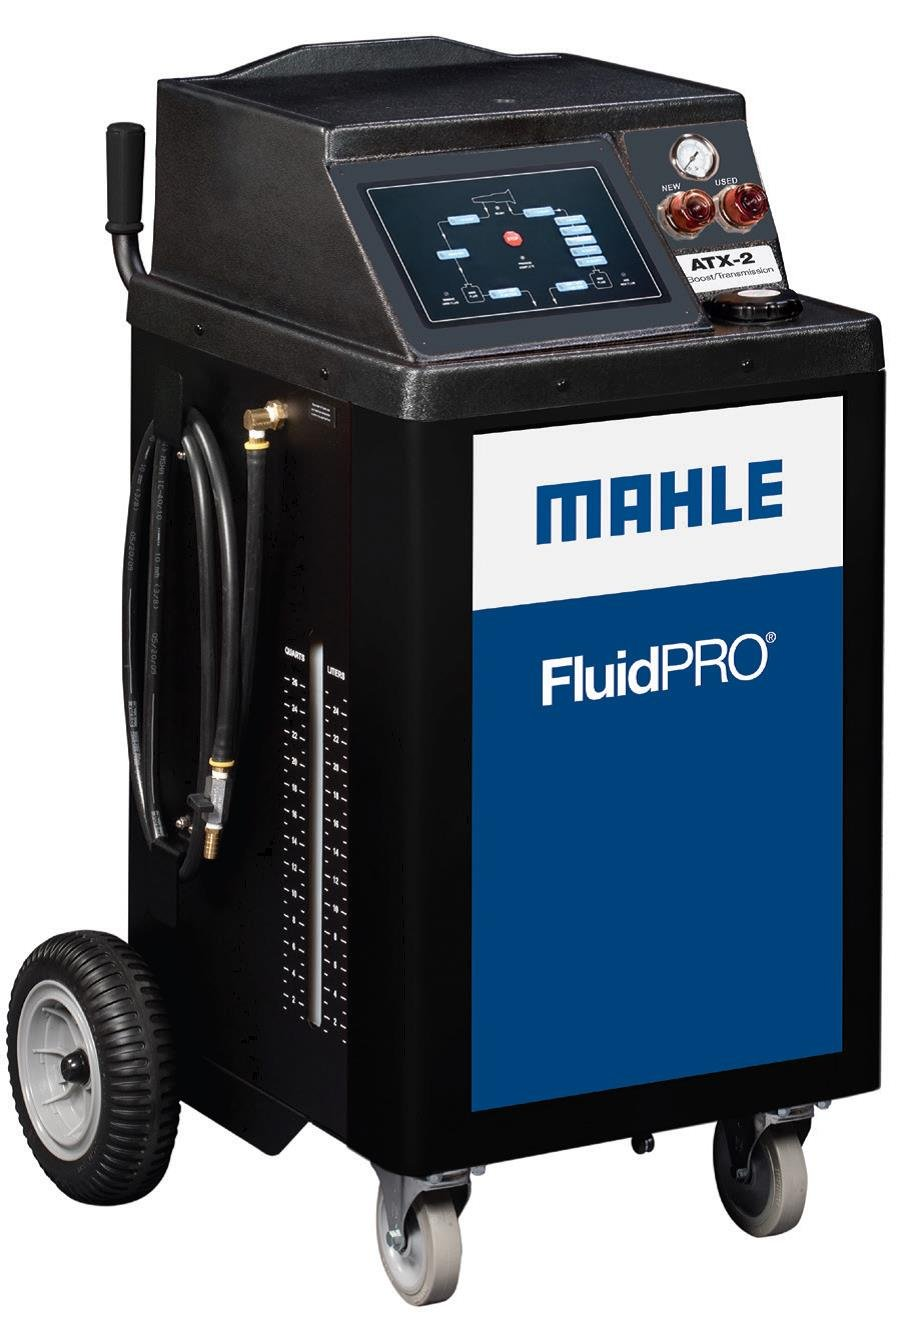 Mahle 400 80008 00 Black Automatic Transmission Fluid Exchanger with Boost Pump (ATX-2+Boost)